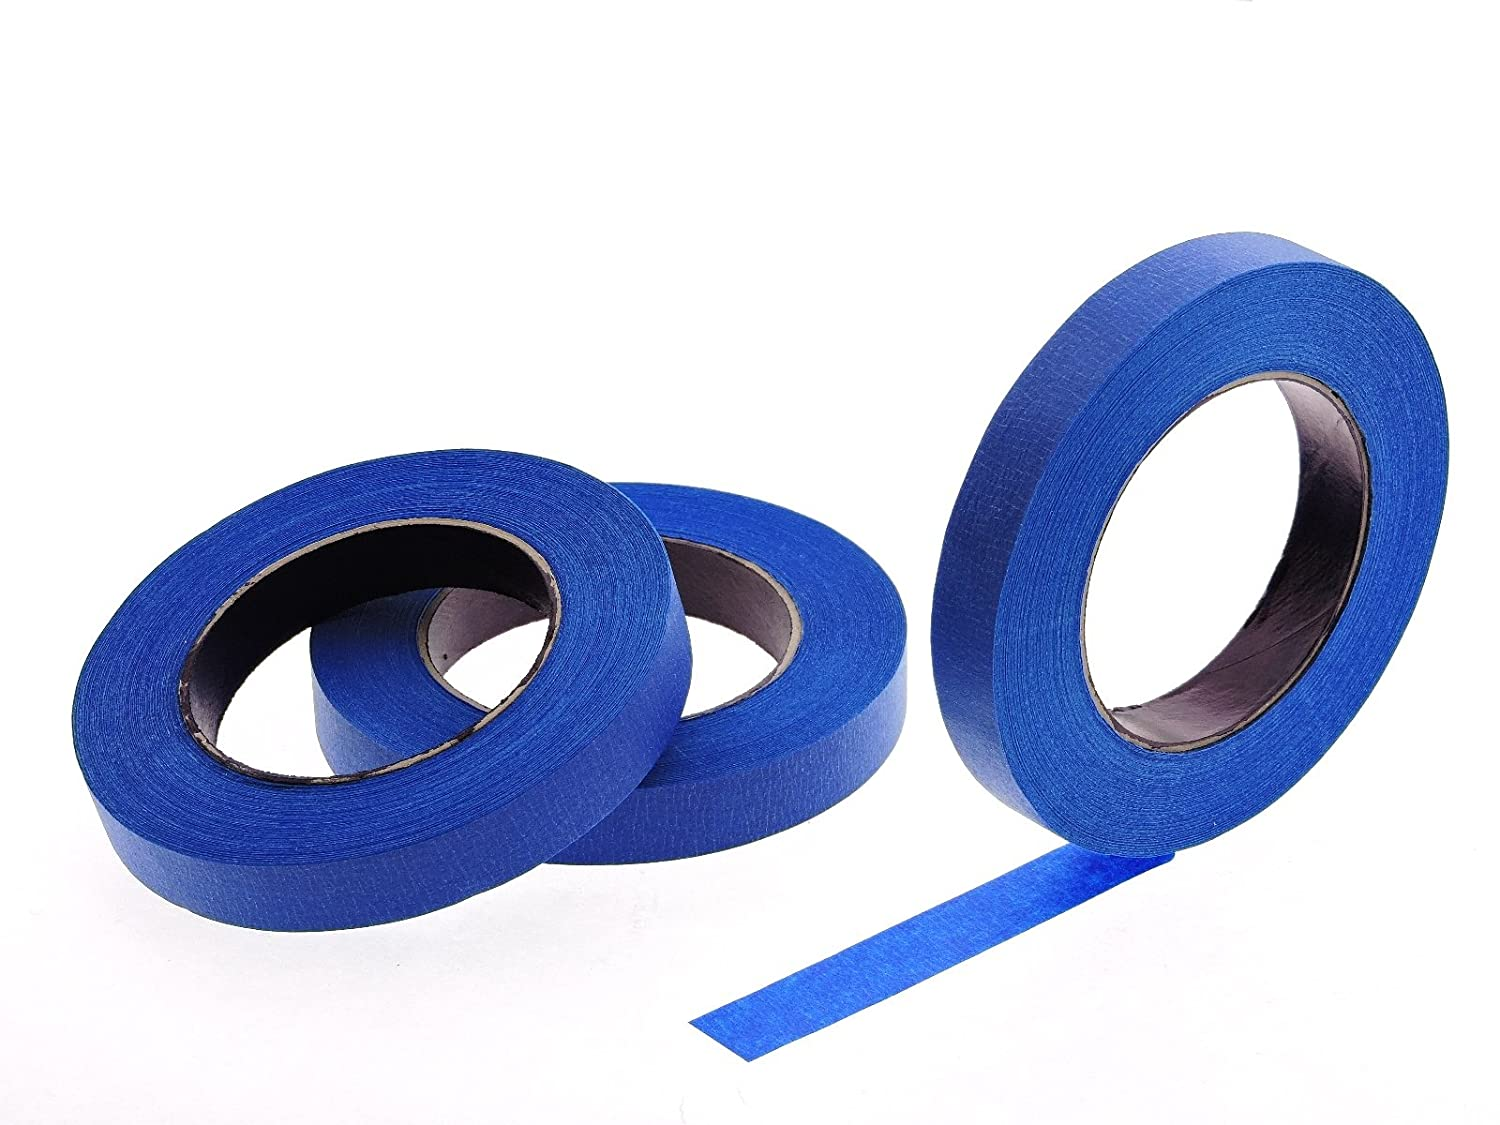 """3pk 3/4"""" x 60 yd Blue Painters Tape PROFESSIONAL Grade Fine Masking Edge Pin Stripping Trim Multi Surface Easy Removal (18MM .75 in)"""